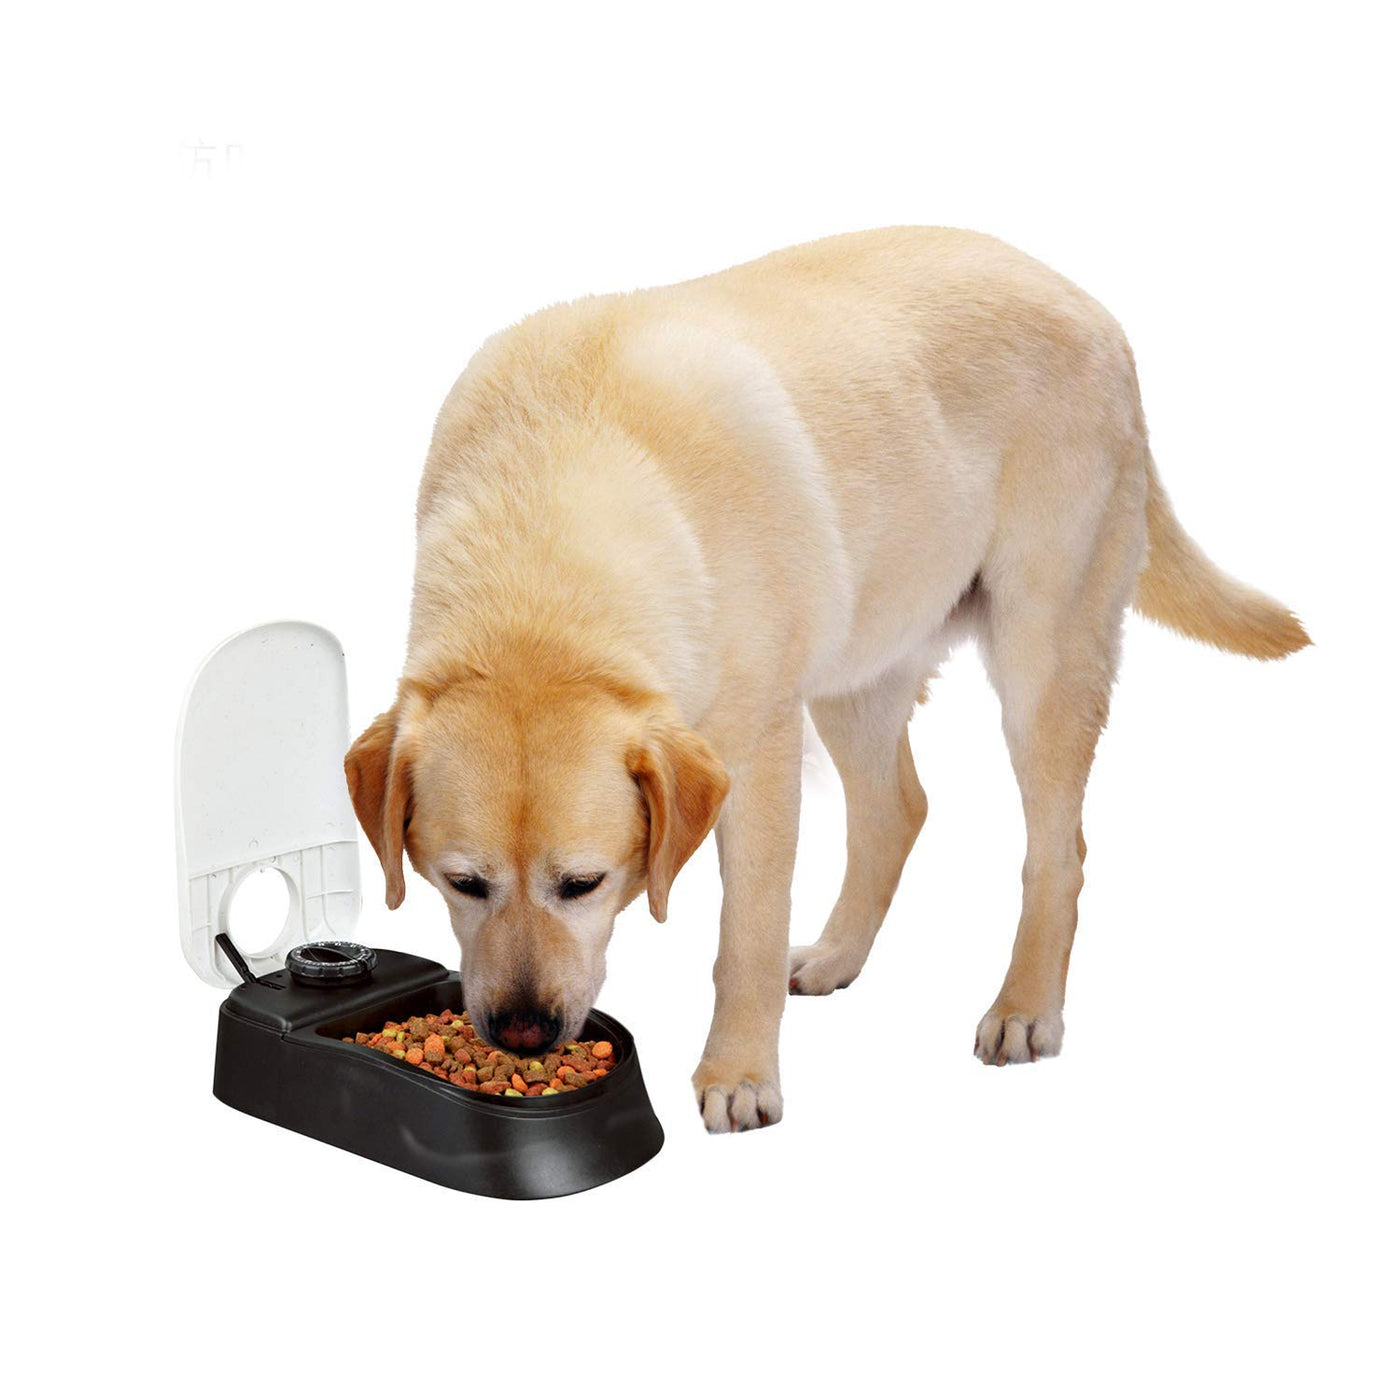 Pawise Automatic Pet Feeder For Dogs And Cats Food Dispenser Station With Timer 100 Bpa Free Dishwasher Safe Great Gift Ideas 1 5 Cup Single Pawsplanet Australia